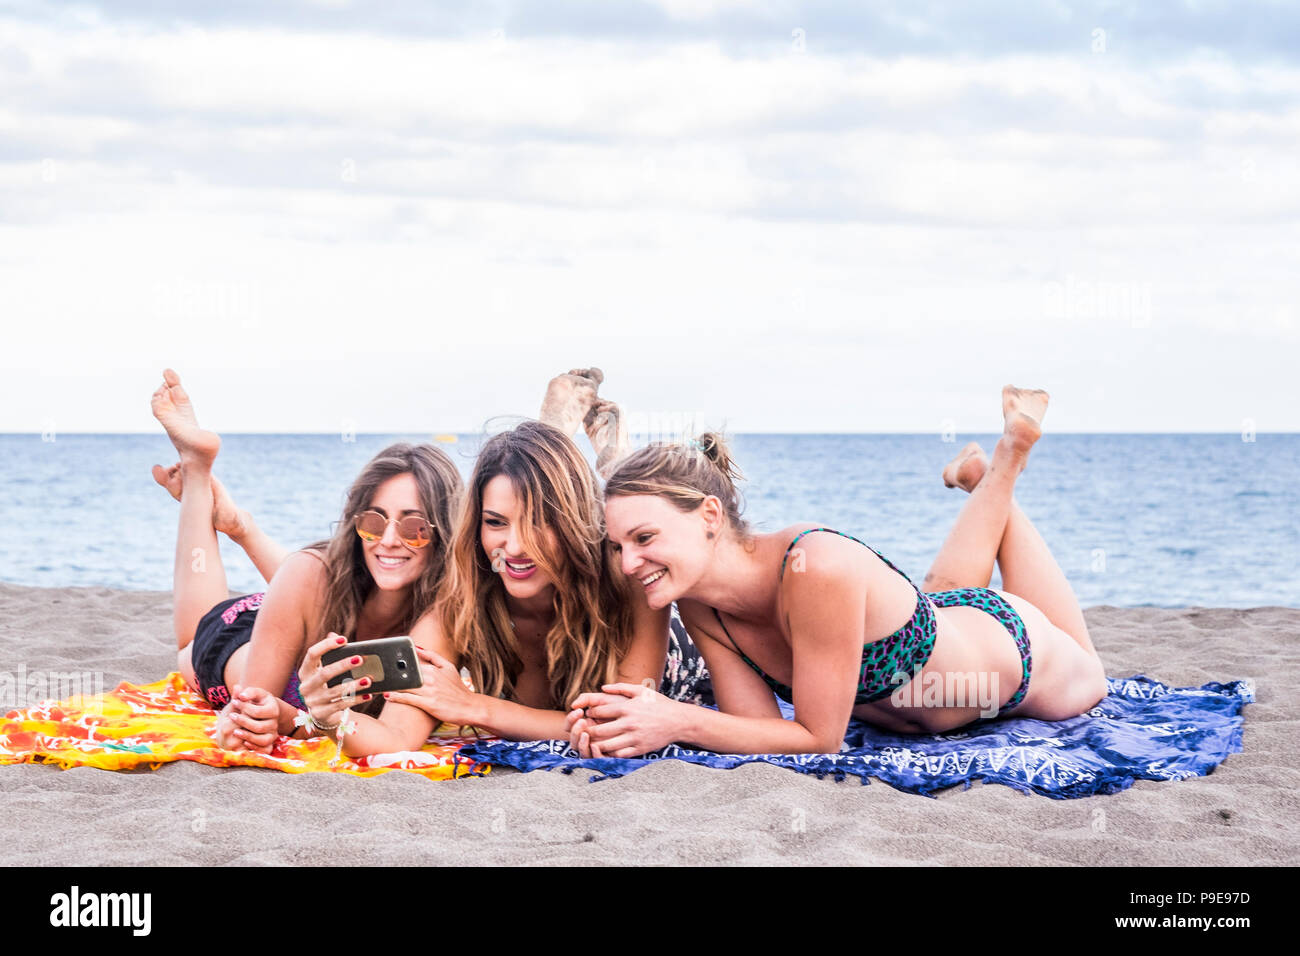 group of three beautiful girls in friendship stay lay down relaxed at the beach speaking and using a smartphone to share her summer lifestyle with fri - Stock Image